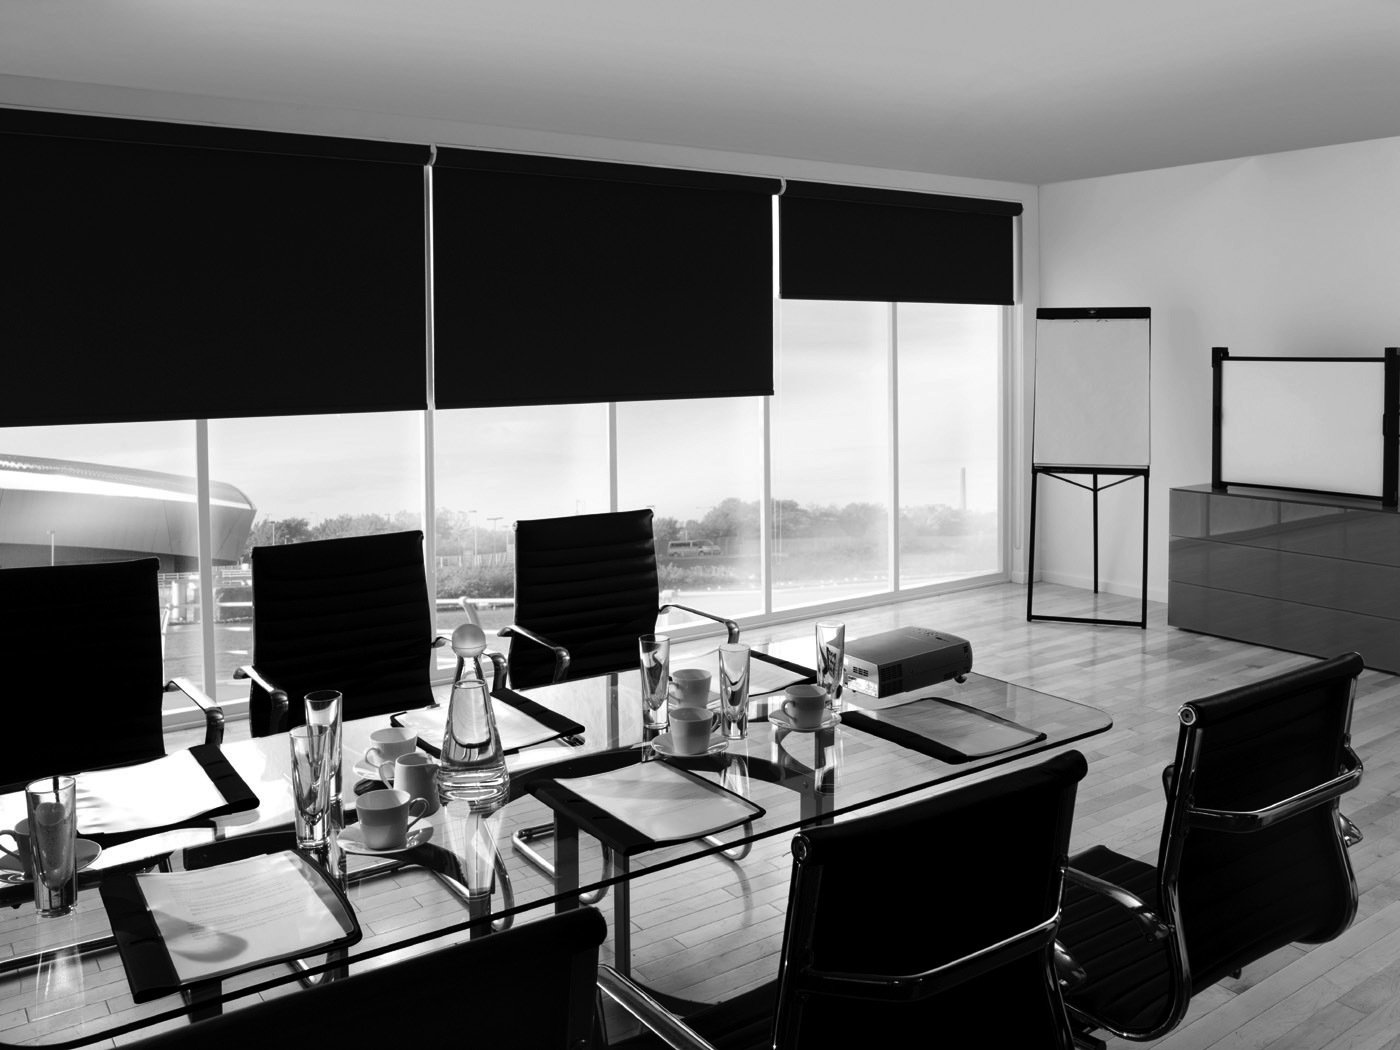 A office with long black blinds over the windows